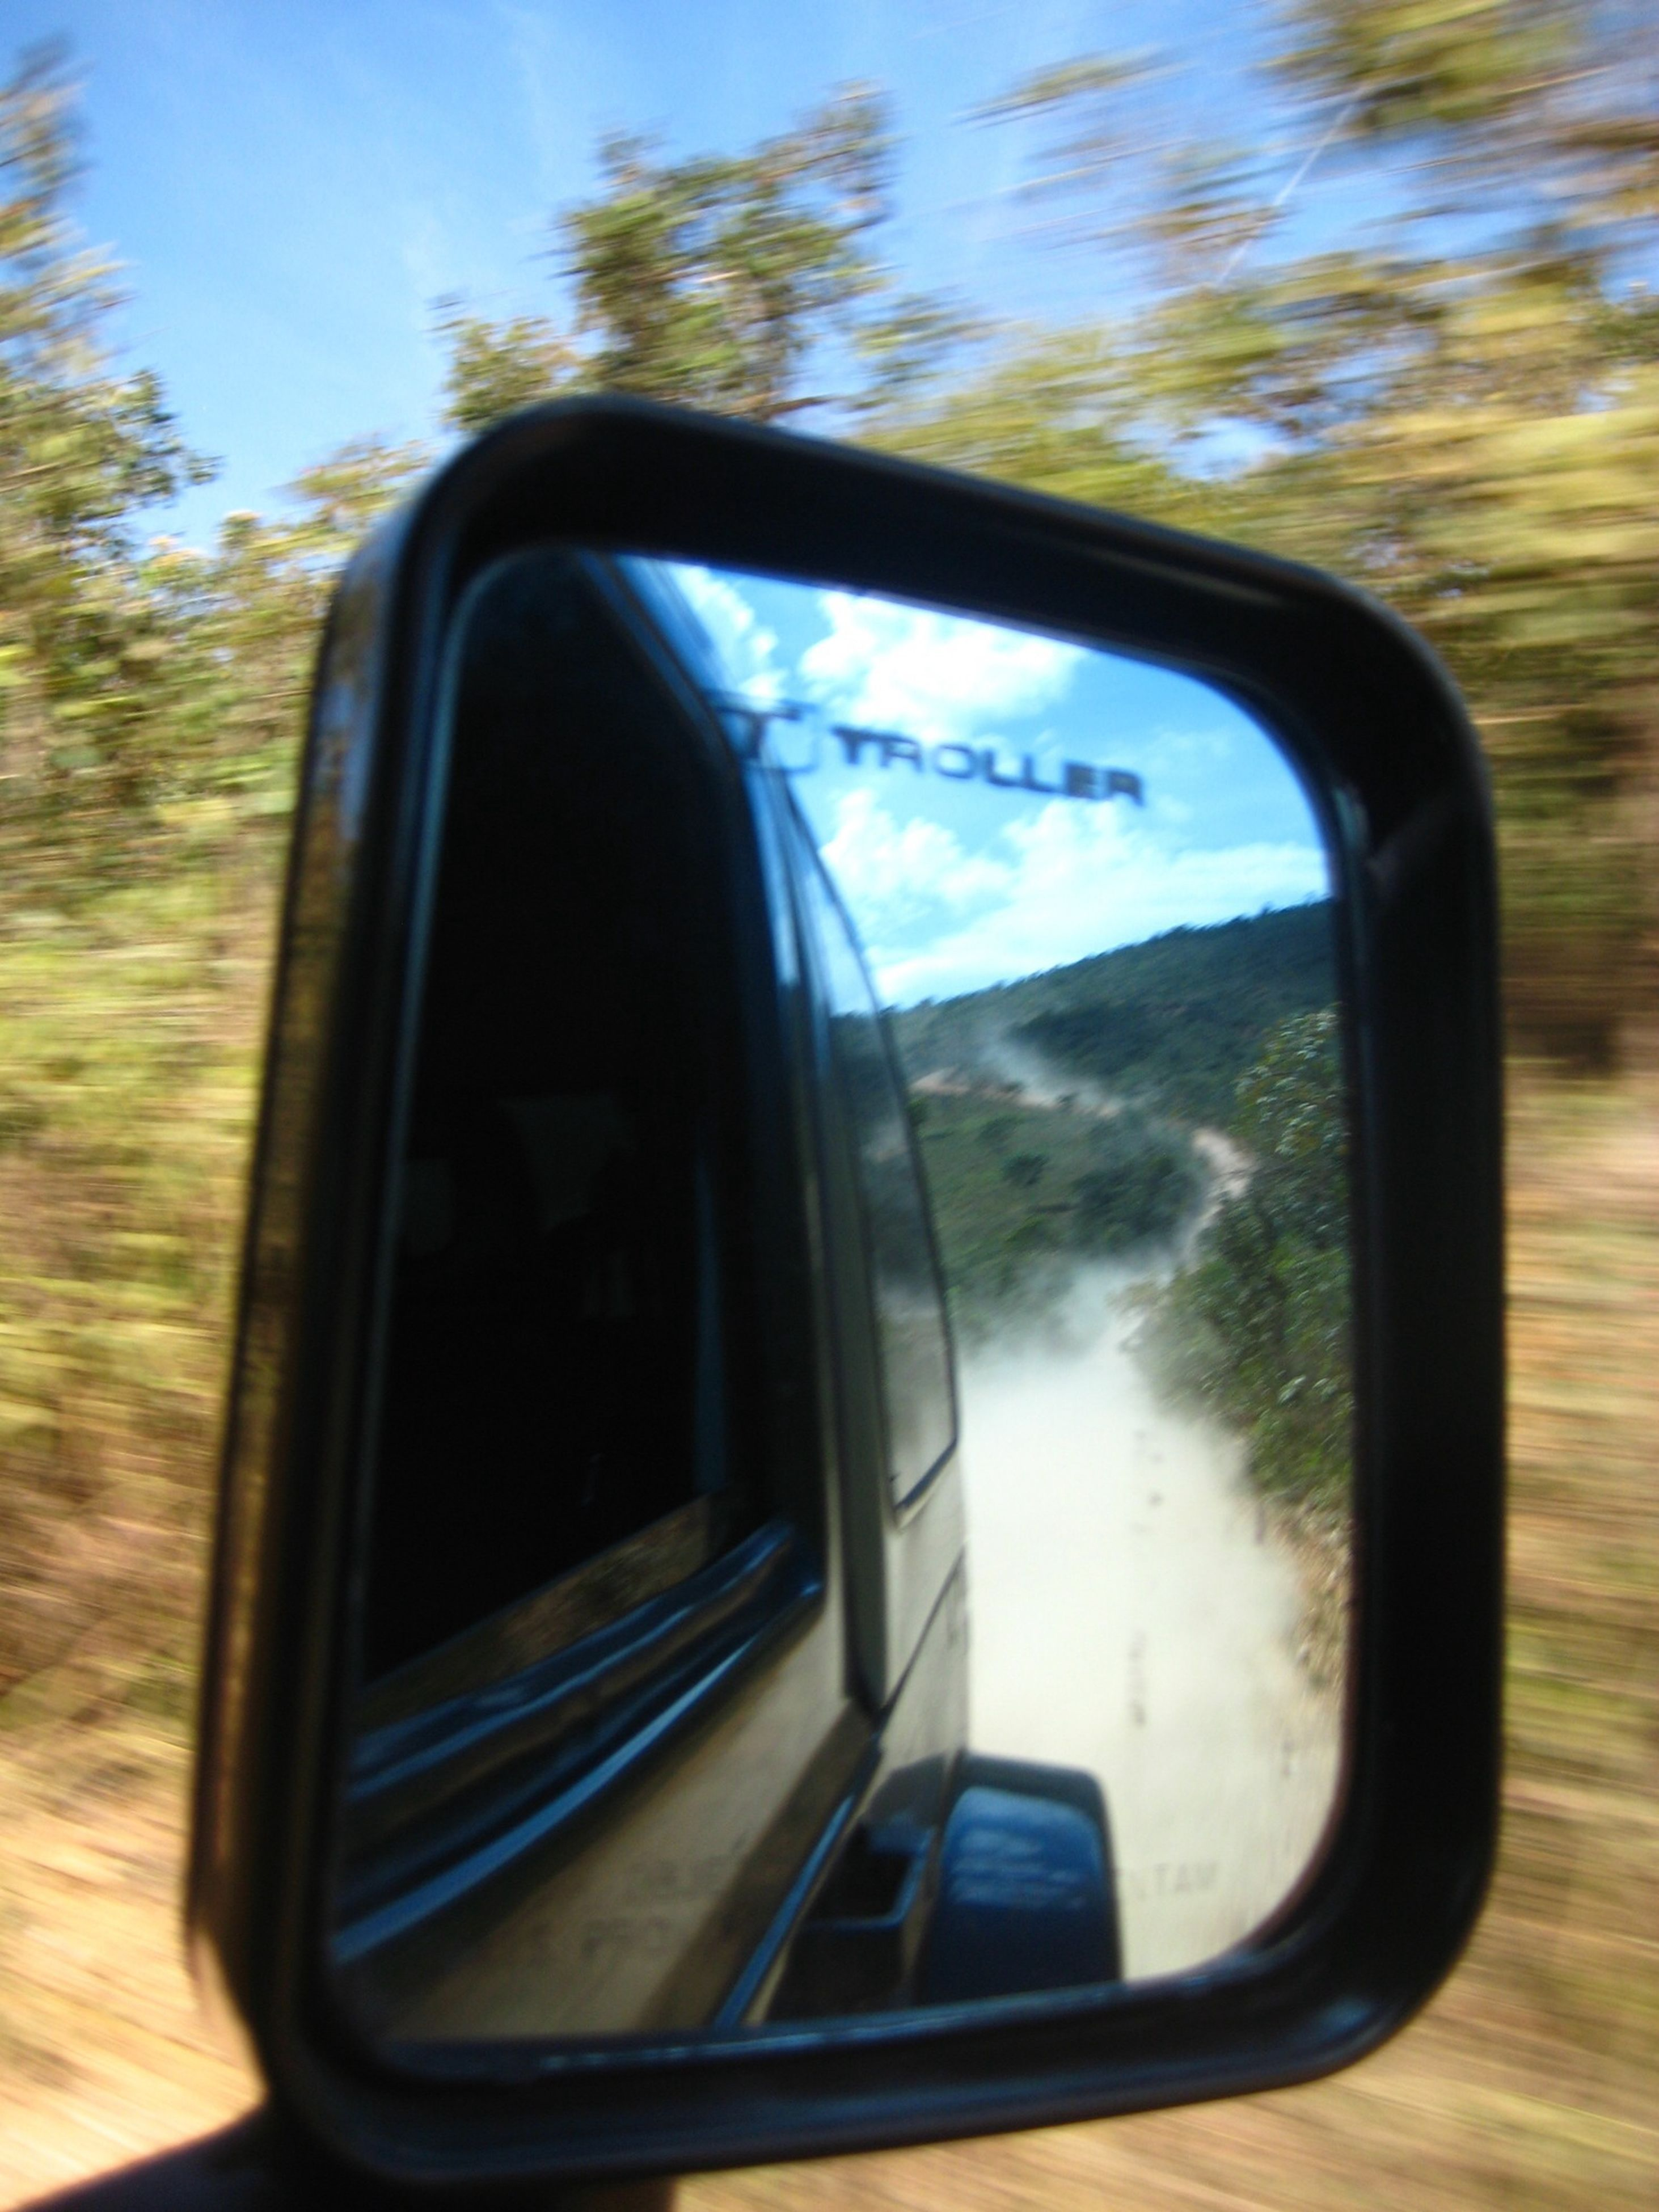 transportation, mode of transport, car, side-view mirror, land vehicle, reflection, vehicle interior, glass - material, transparent, window, travel, car interior, sky, part of, close-up, road, windshield, mirror, cropped, rear view mirror